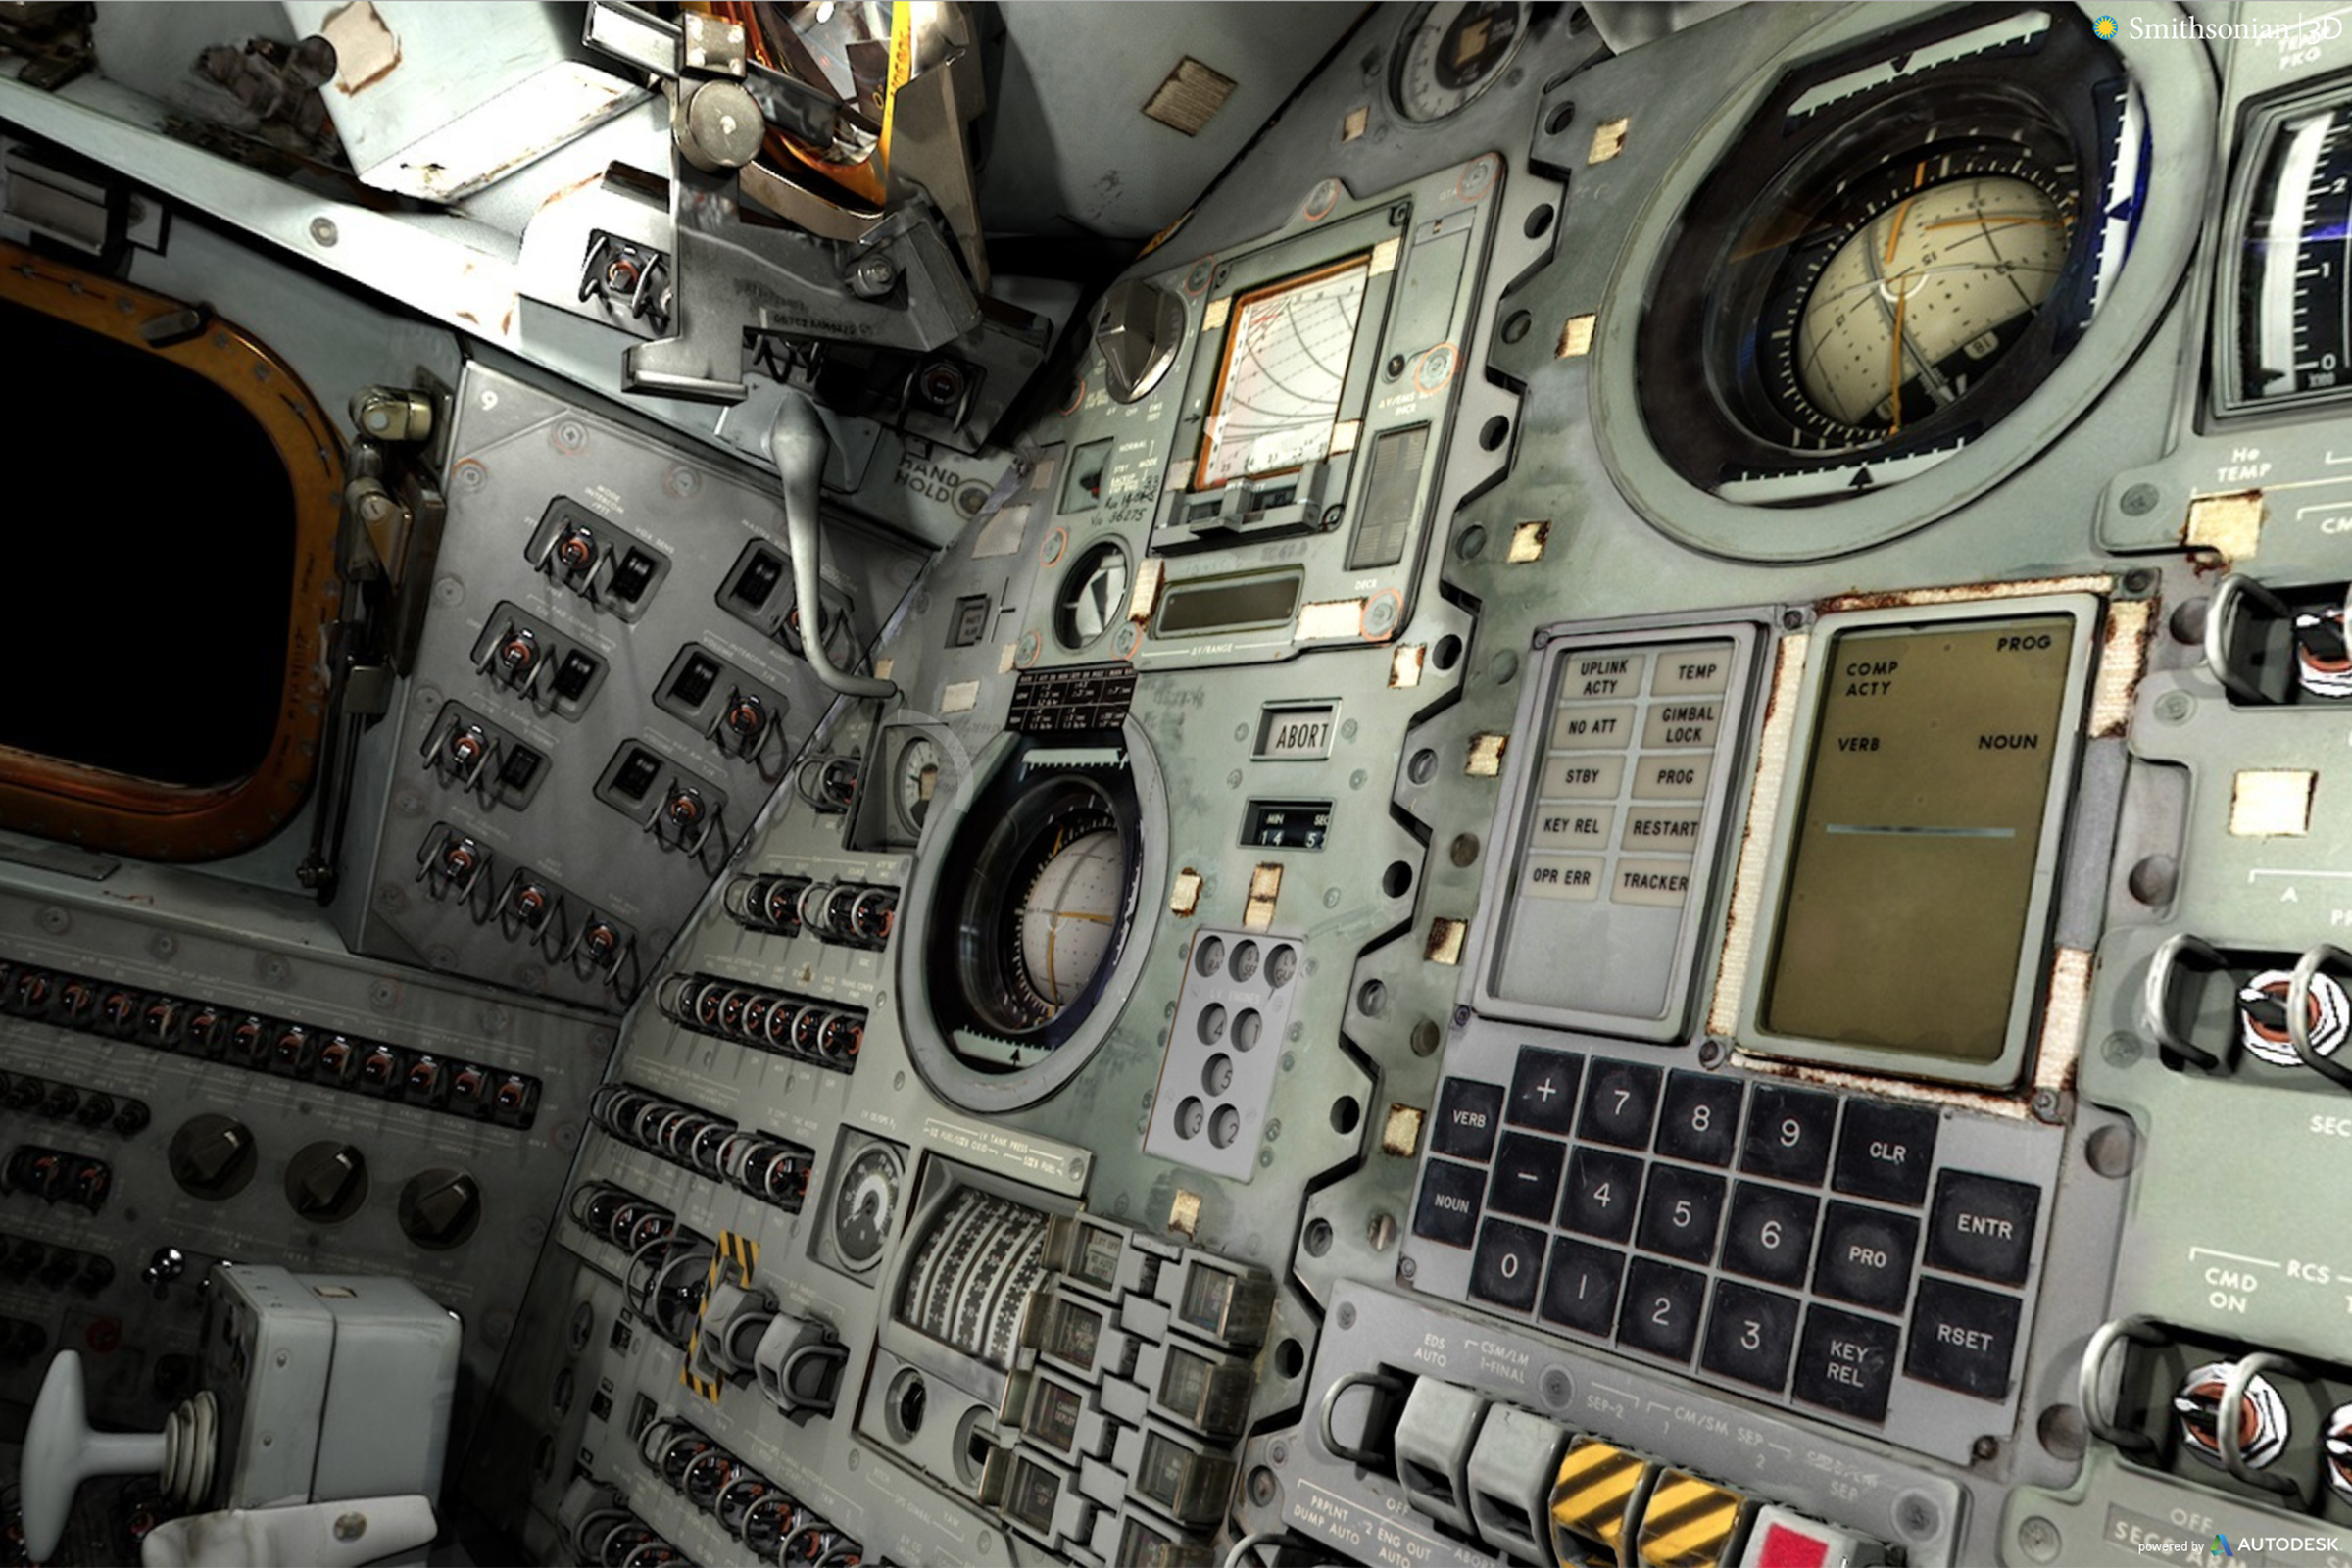 A 3D rendering inside ' Columbia ', the Apollo 11 Command Module. Click the link to see the virtual reality model.